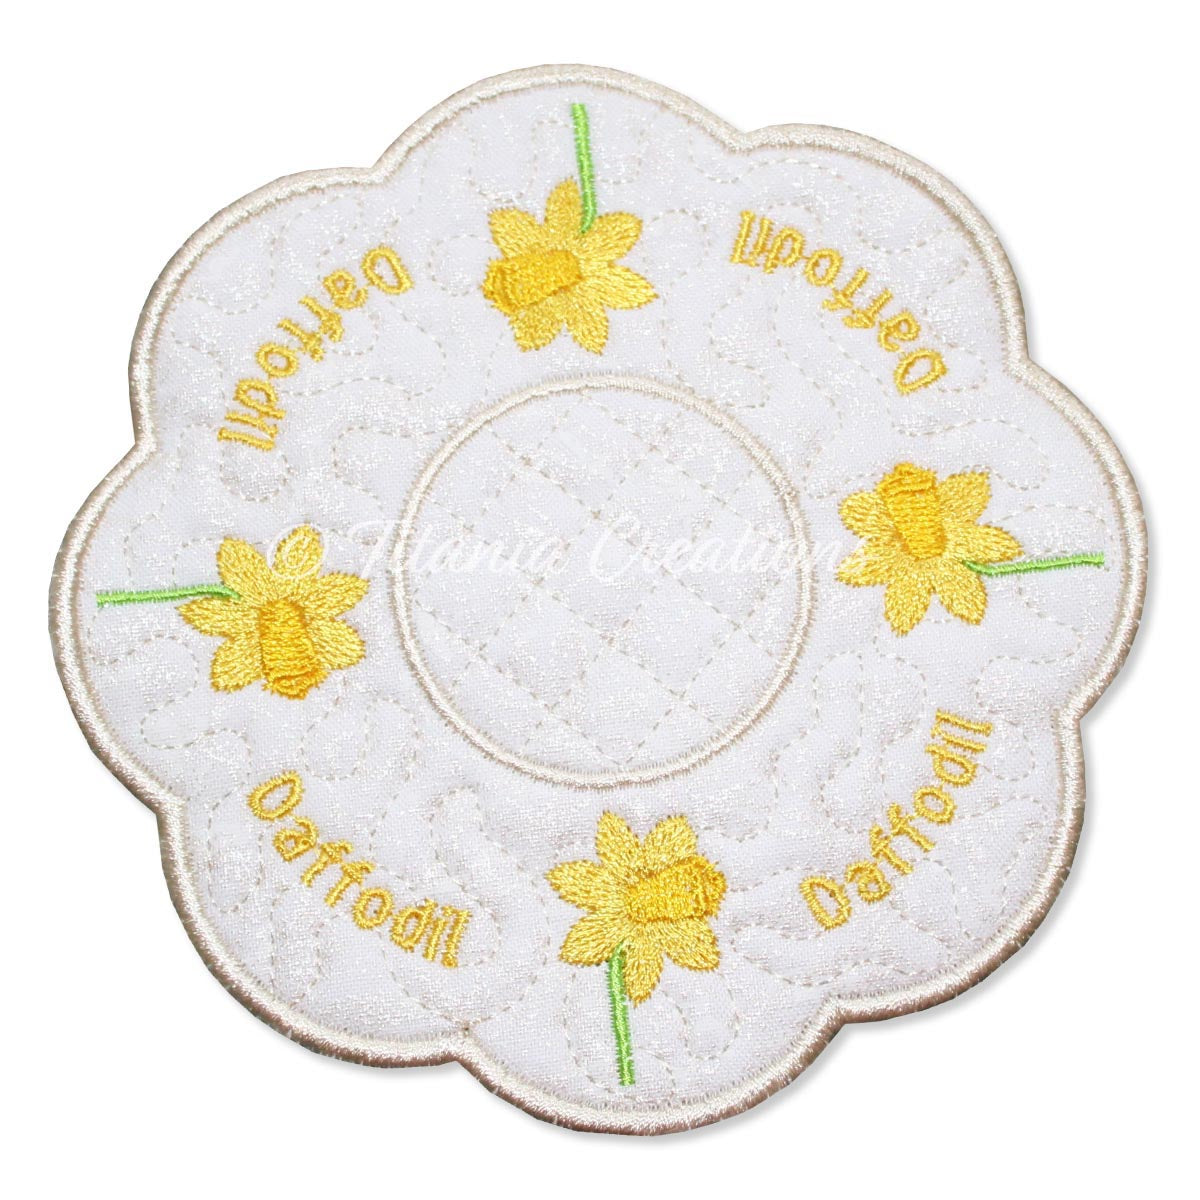 ITH Daffodil March Flower Candle Mat 5x5 6x6 7x7 8x8